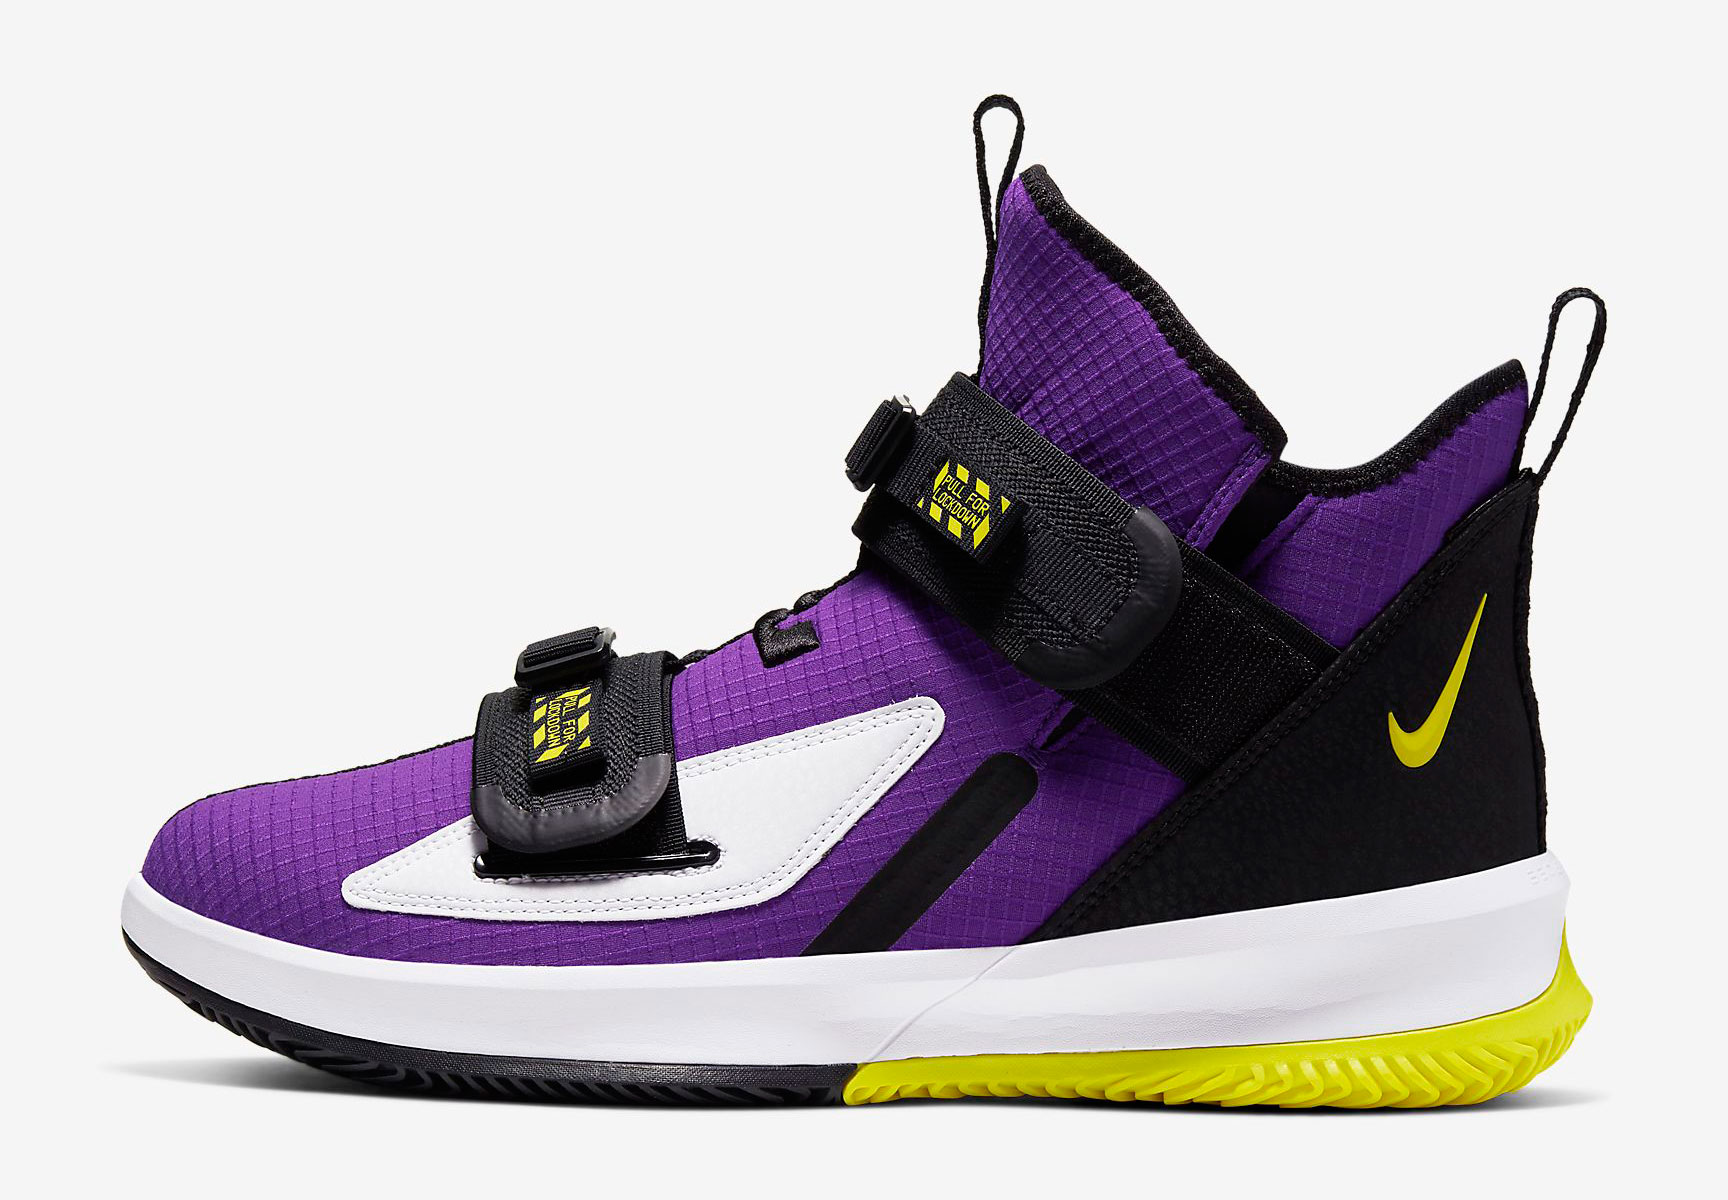 nike-lebron-soldier-13-lakers-purple-yellow-release-date